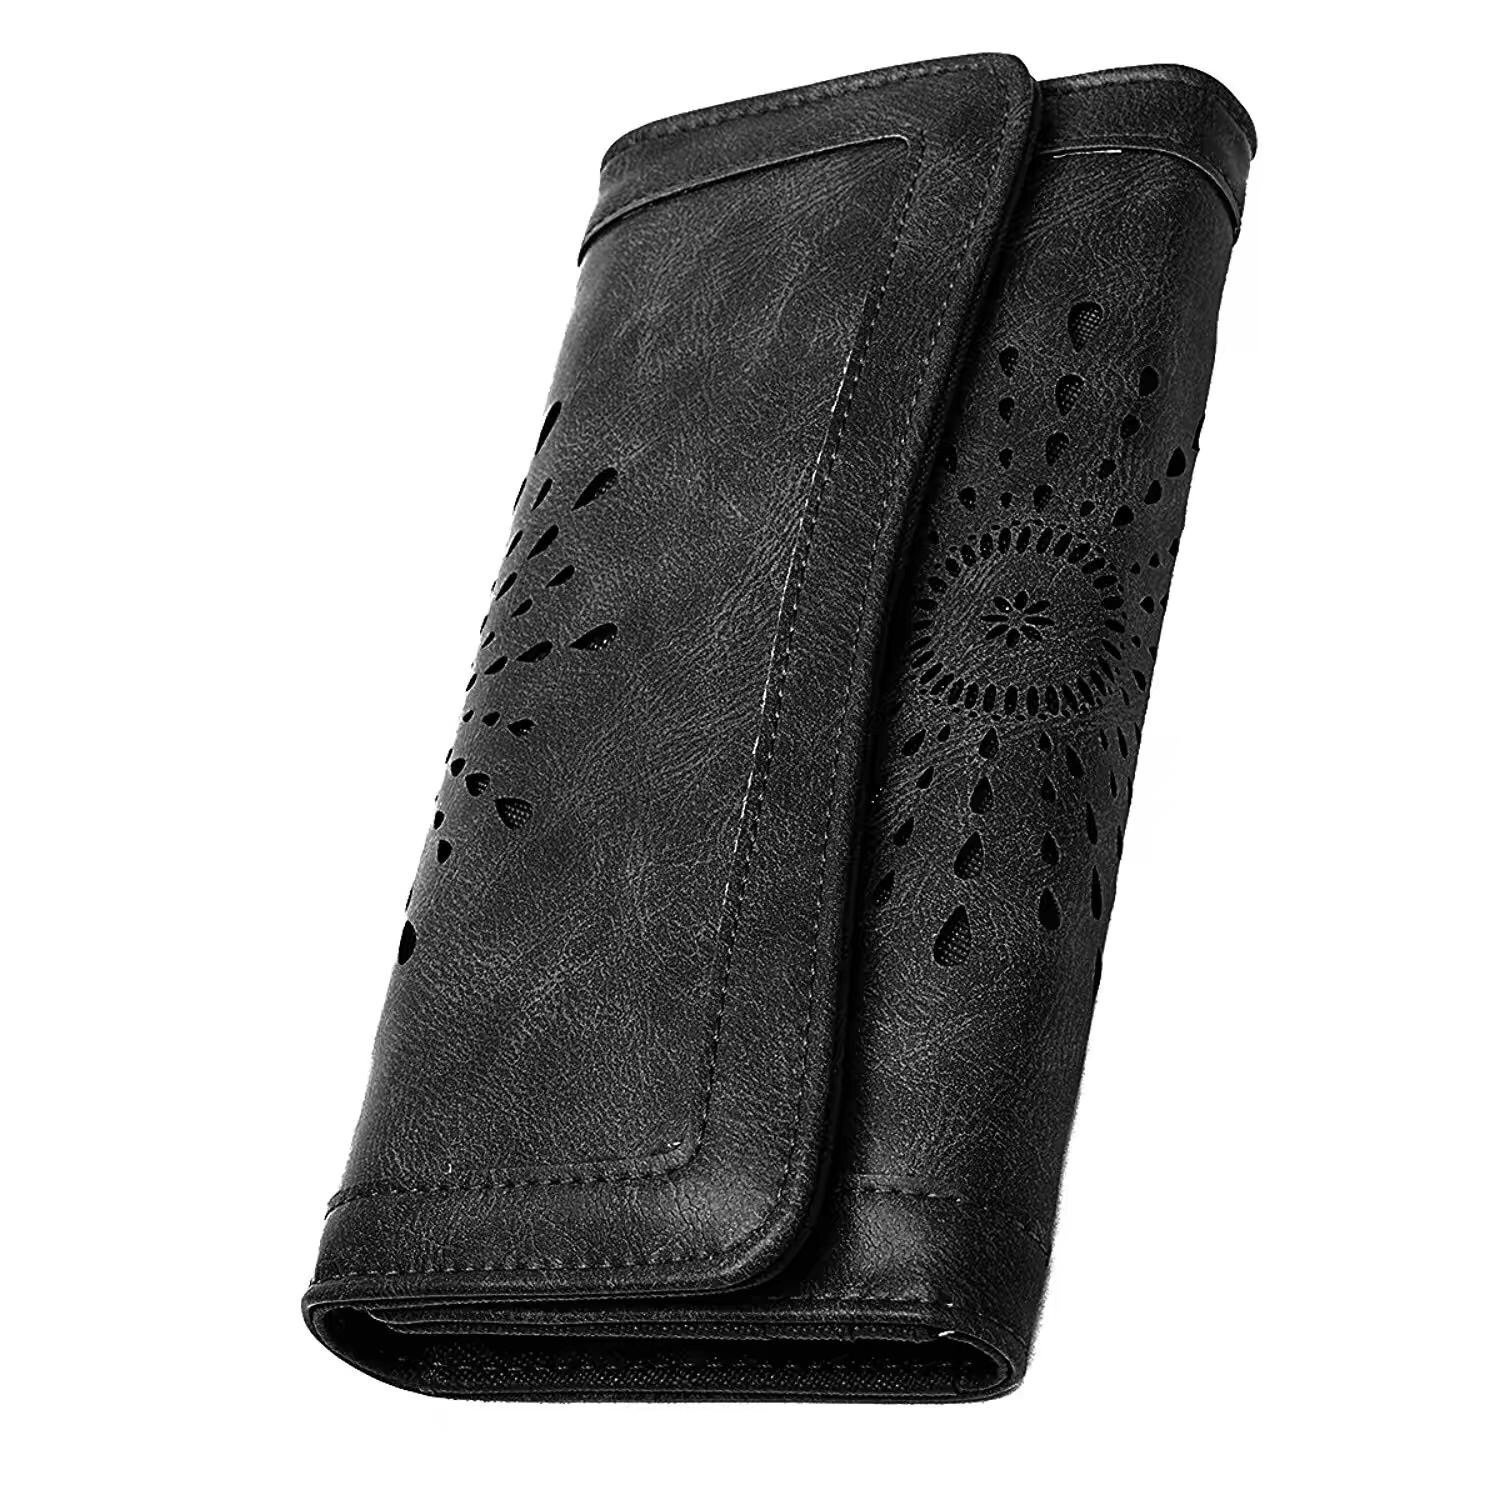 7f8af6644ee7 APHISON Women's Soft Leather Wallet Purse Lady Credit Card Clutch Holder  Long Wallets / Gift Box